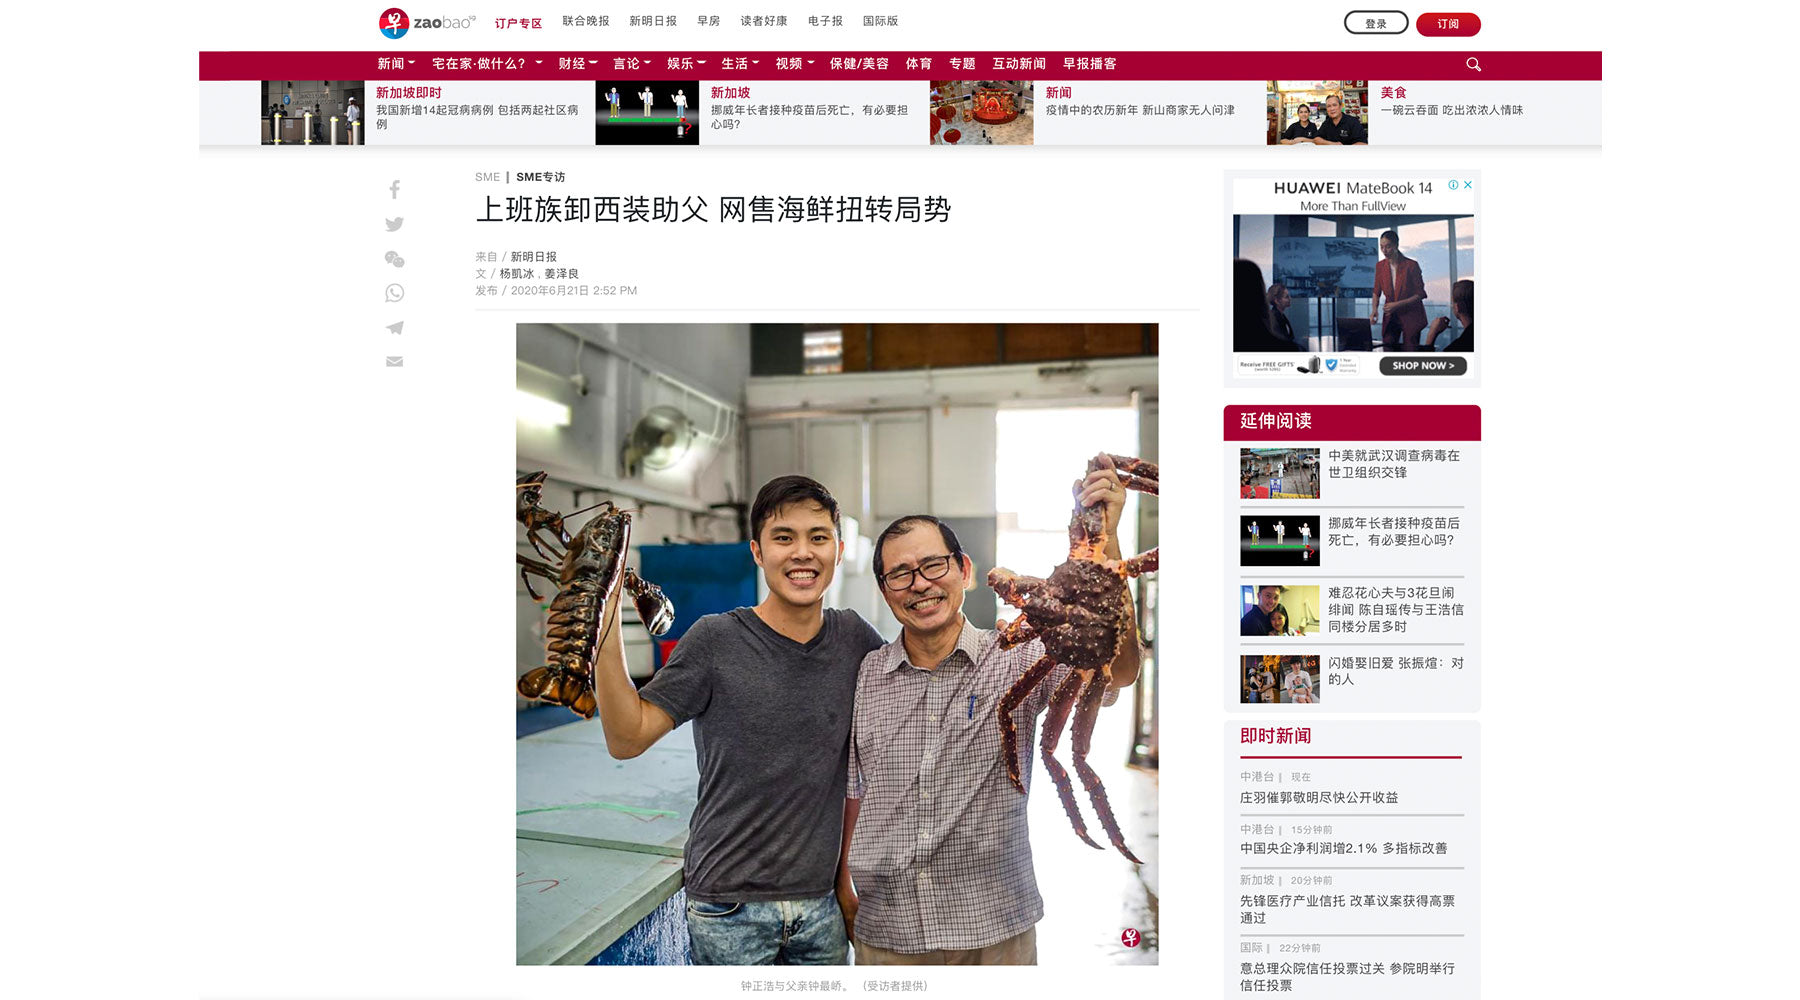 global live seafood featured in lianhe zaobao 2020